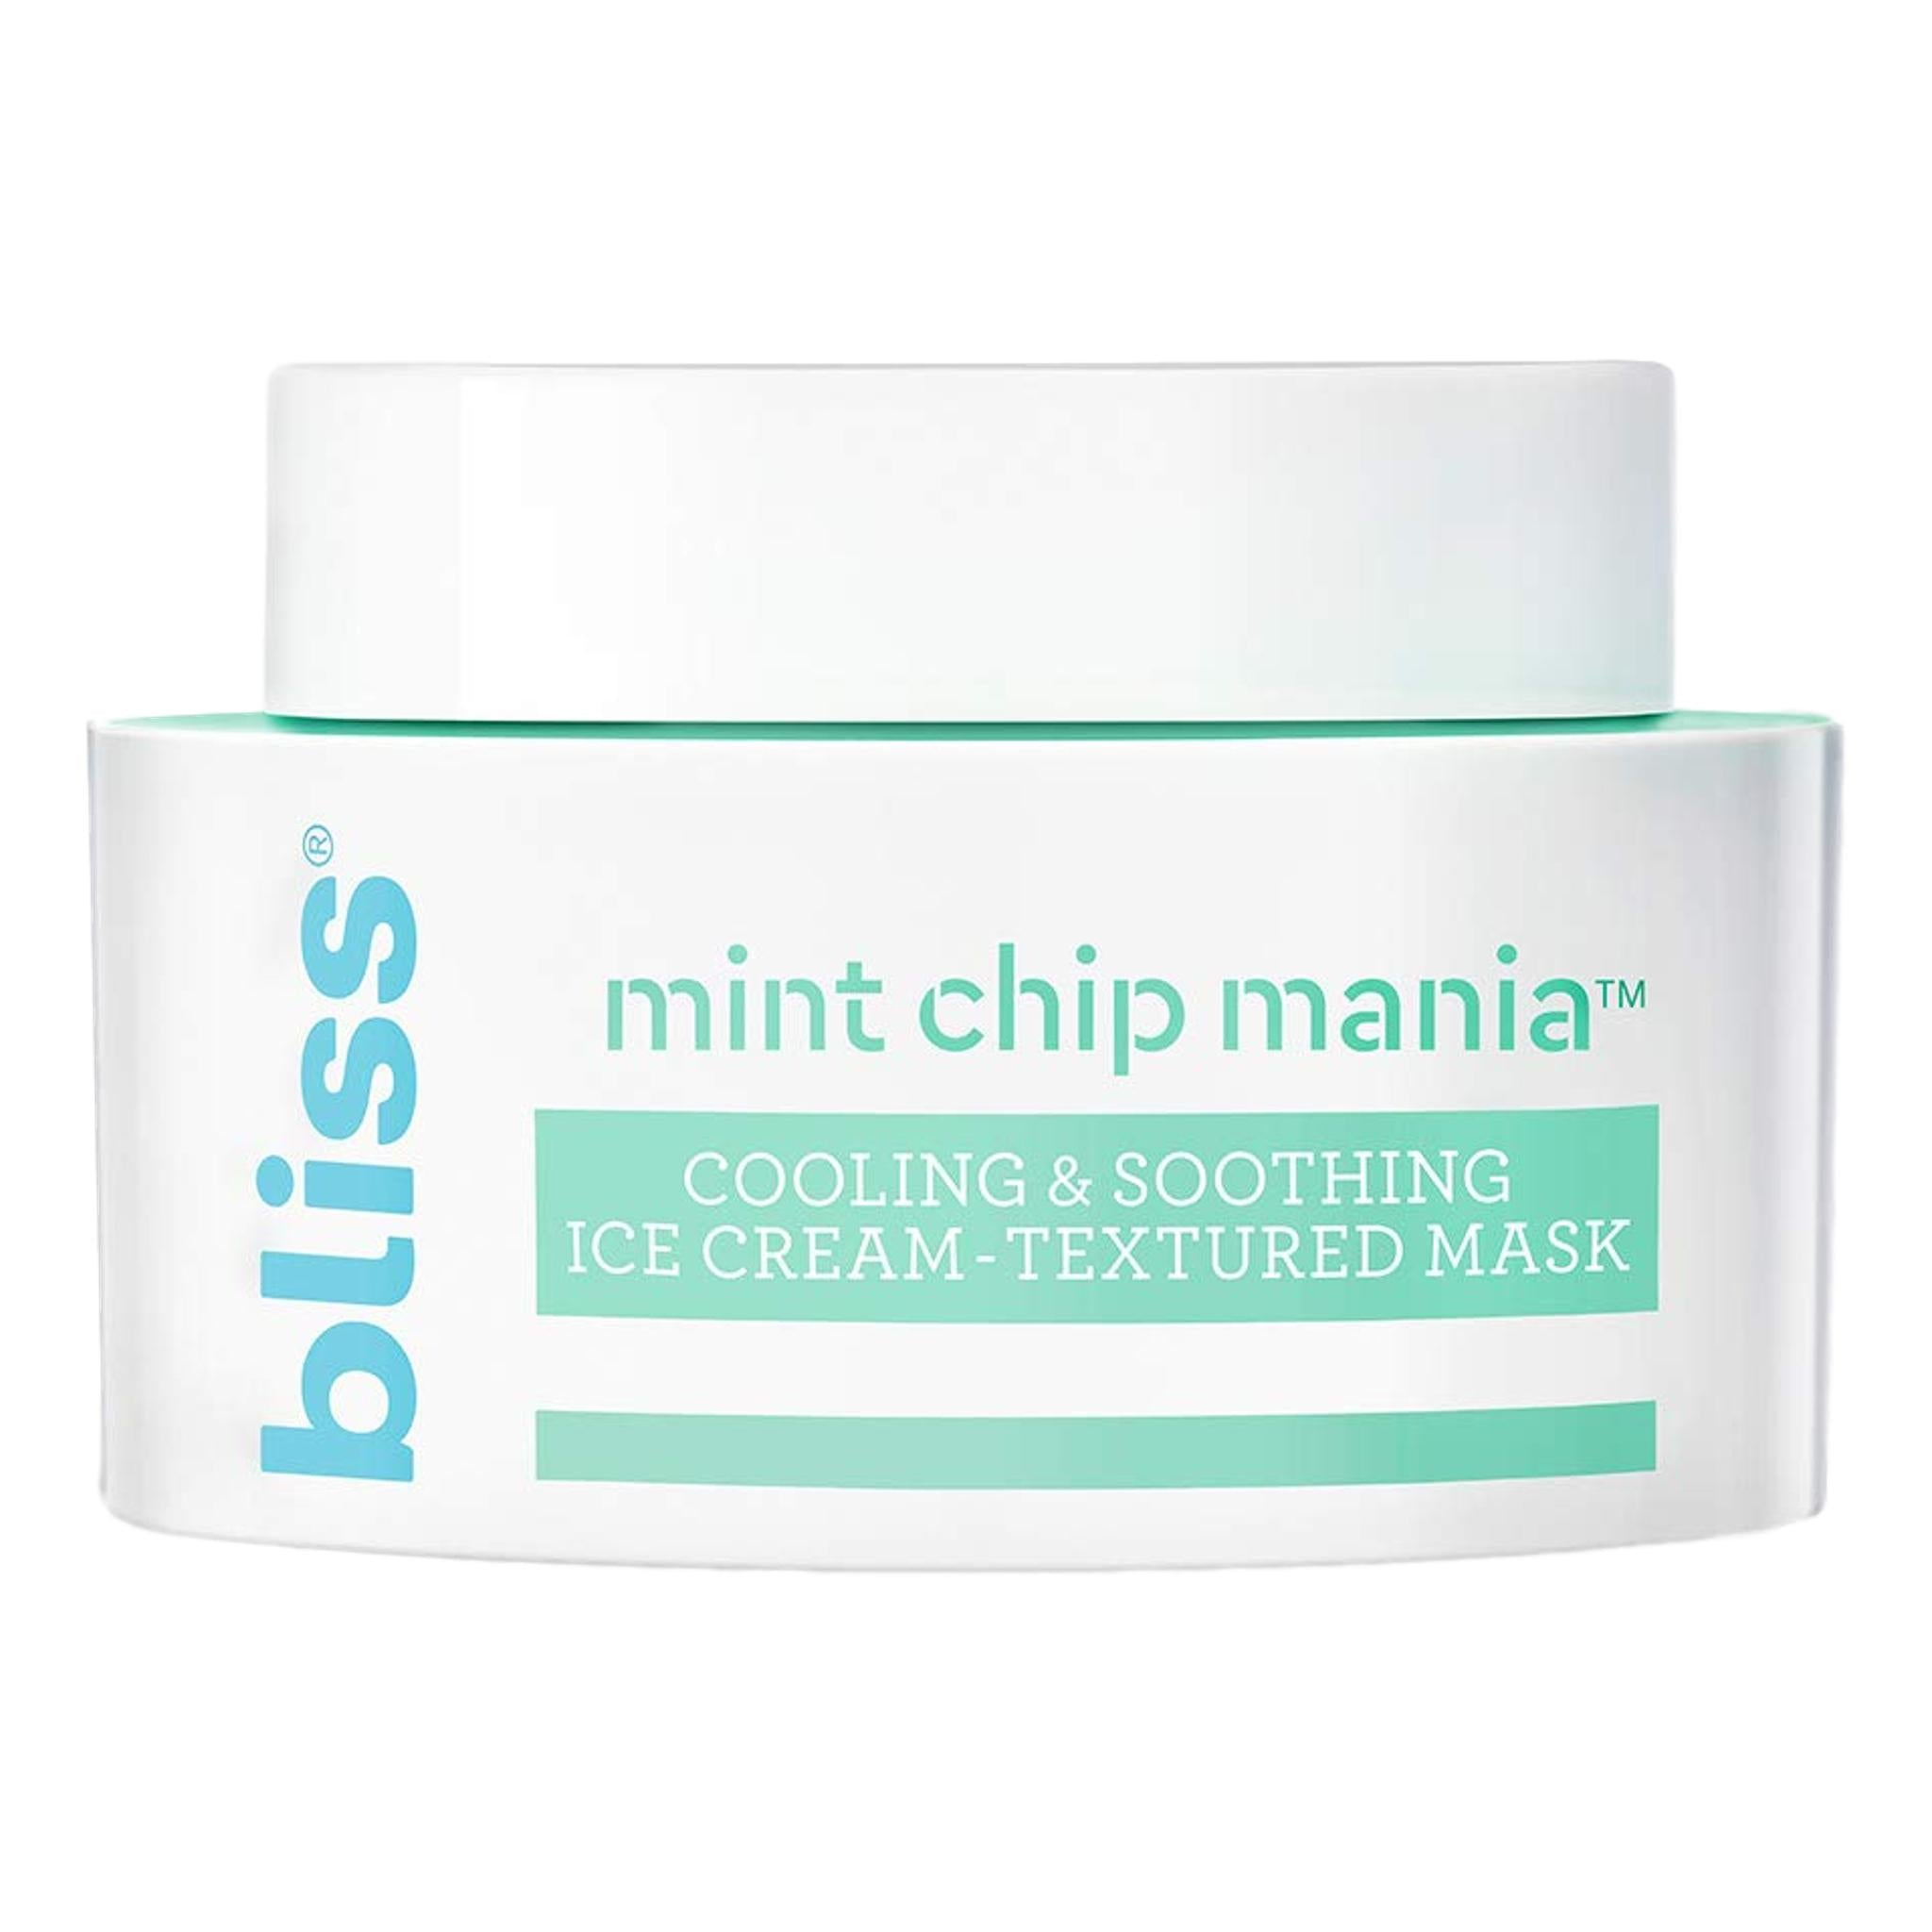 BLISS Mint Chip Mania Mask, Face Masks, London Loves Beauty